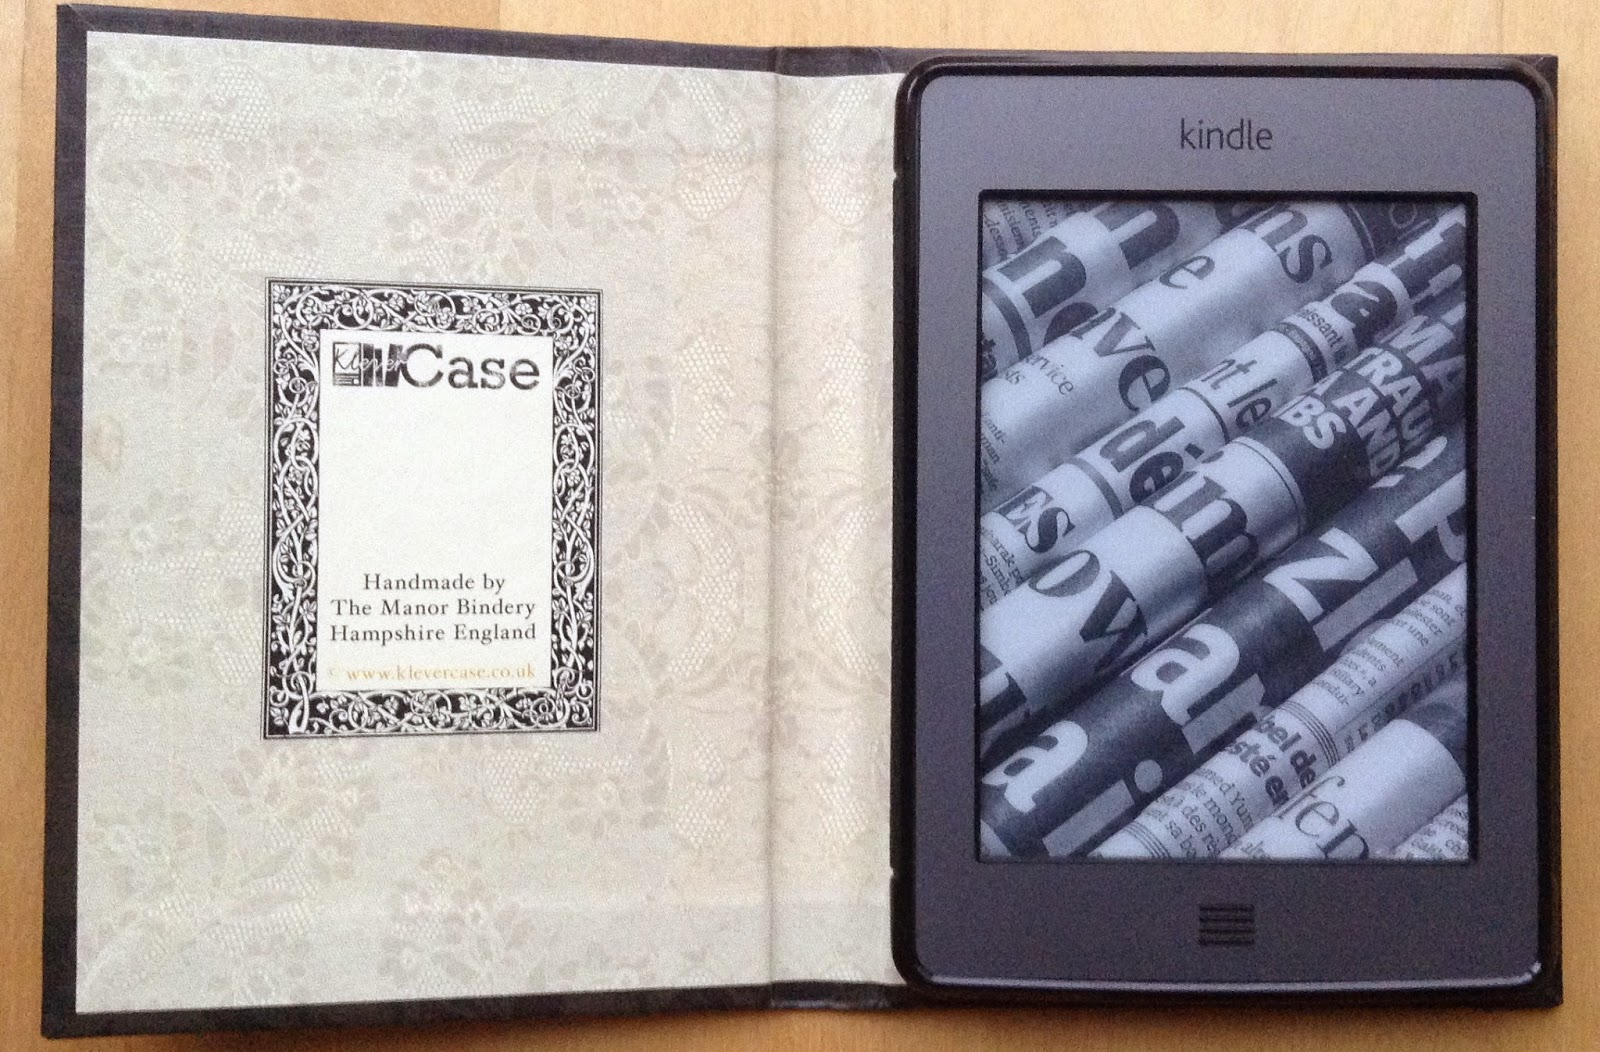 Inside of Pride & Prejudice kindle case